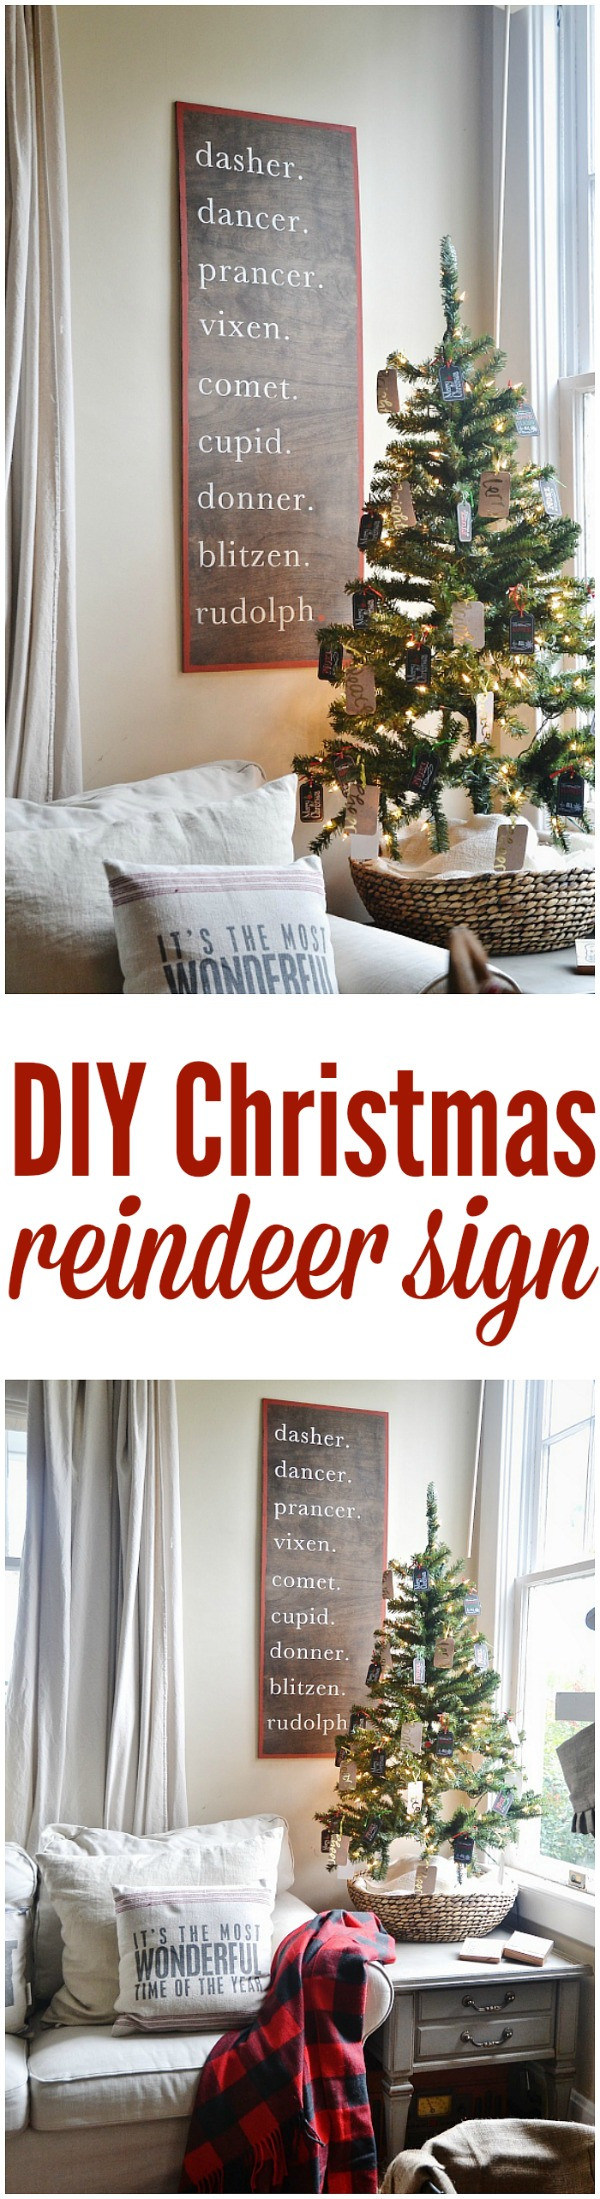 25 diy rustic christmas decoration ideas tutorials 2017 Christmas decorating diy